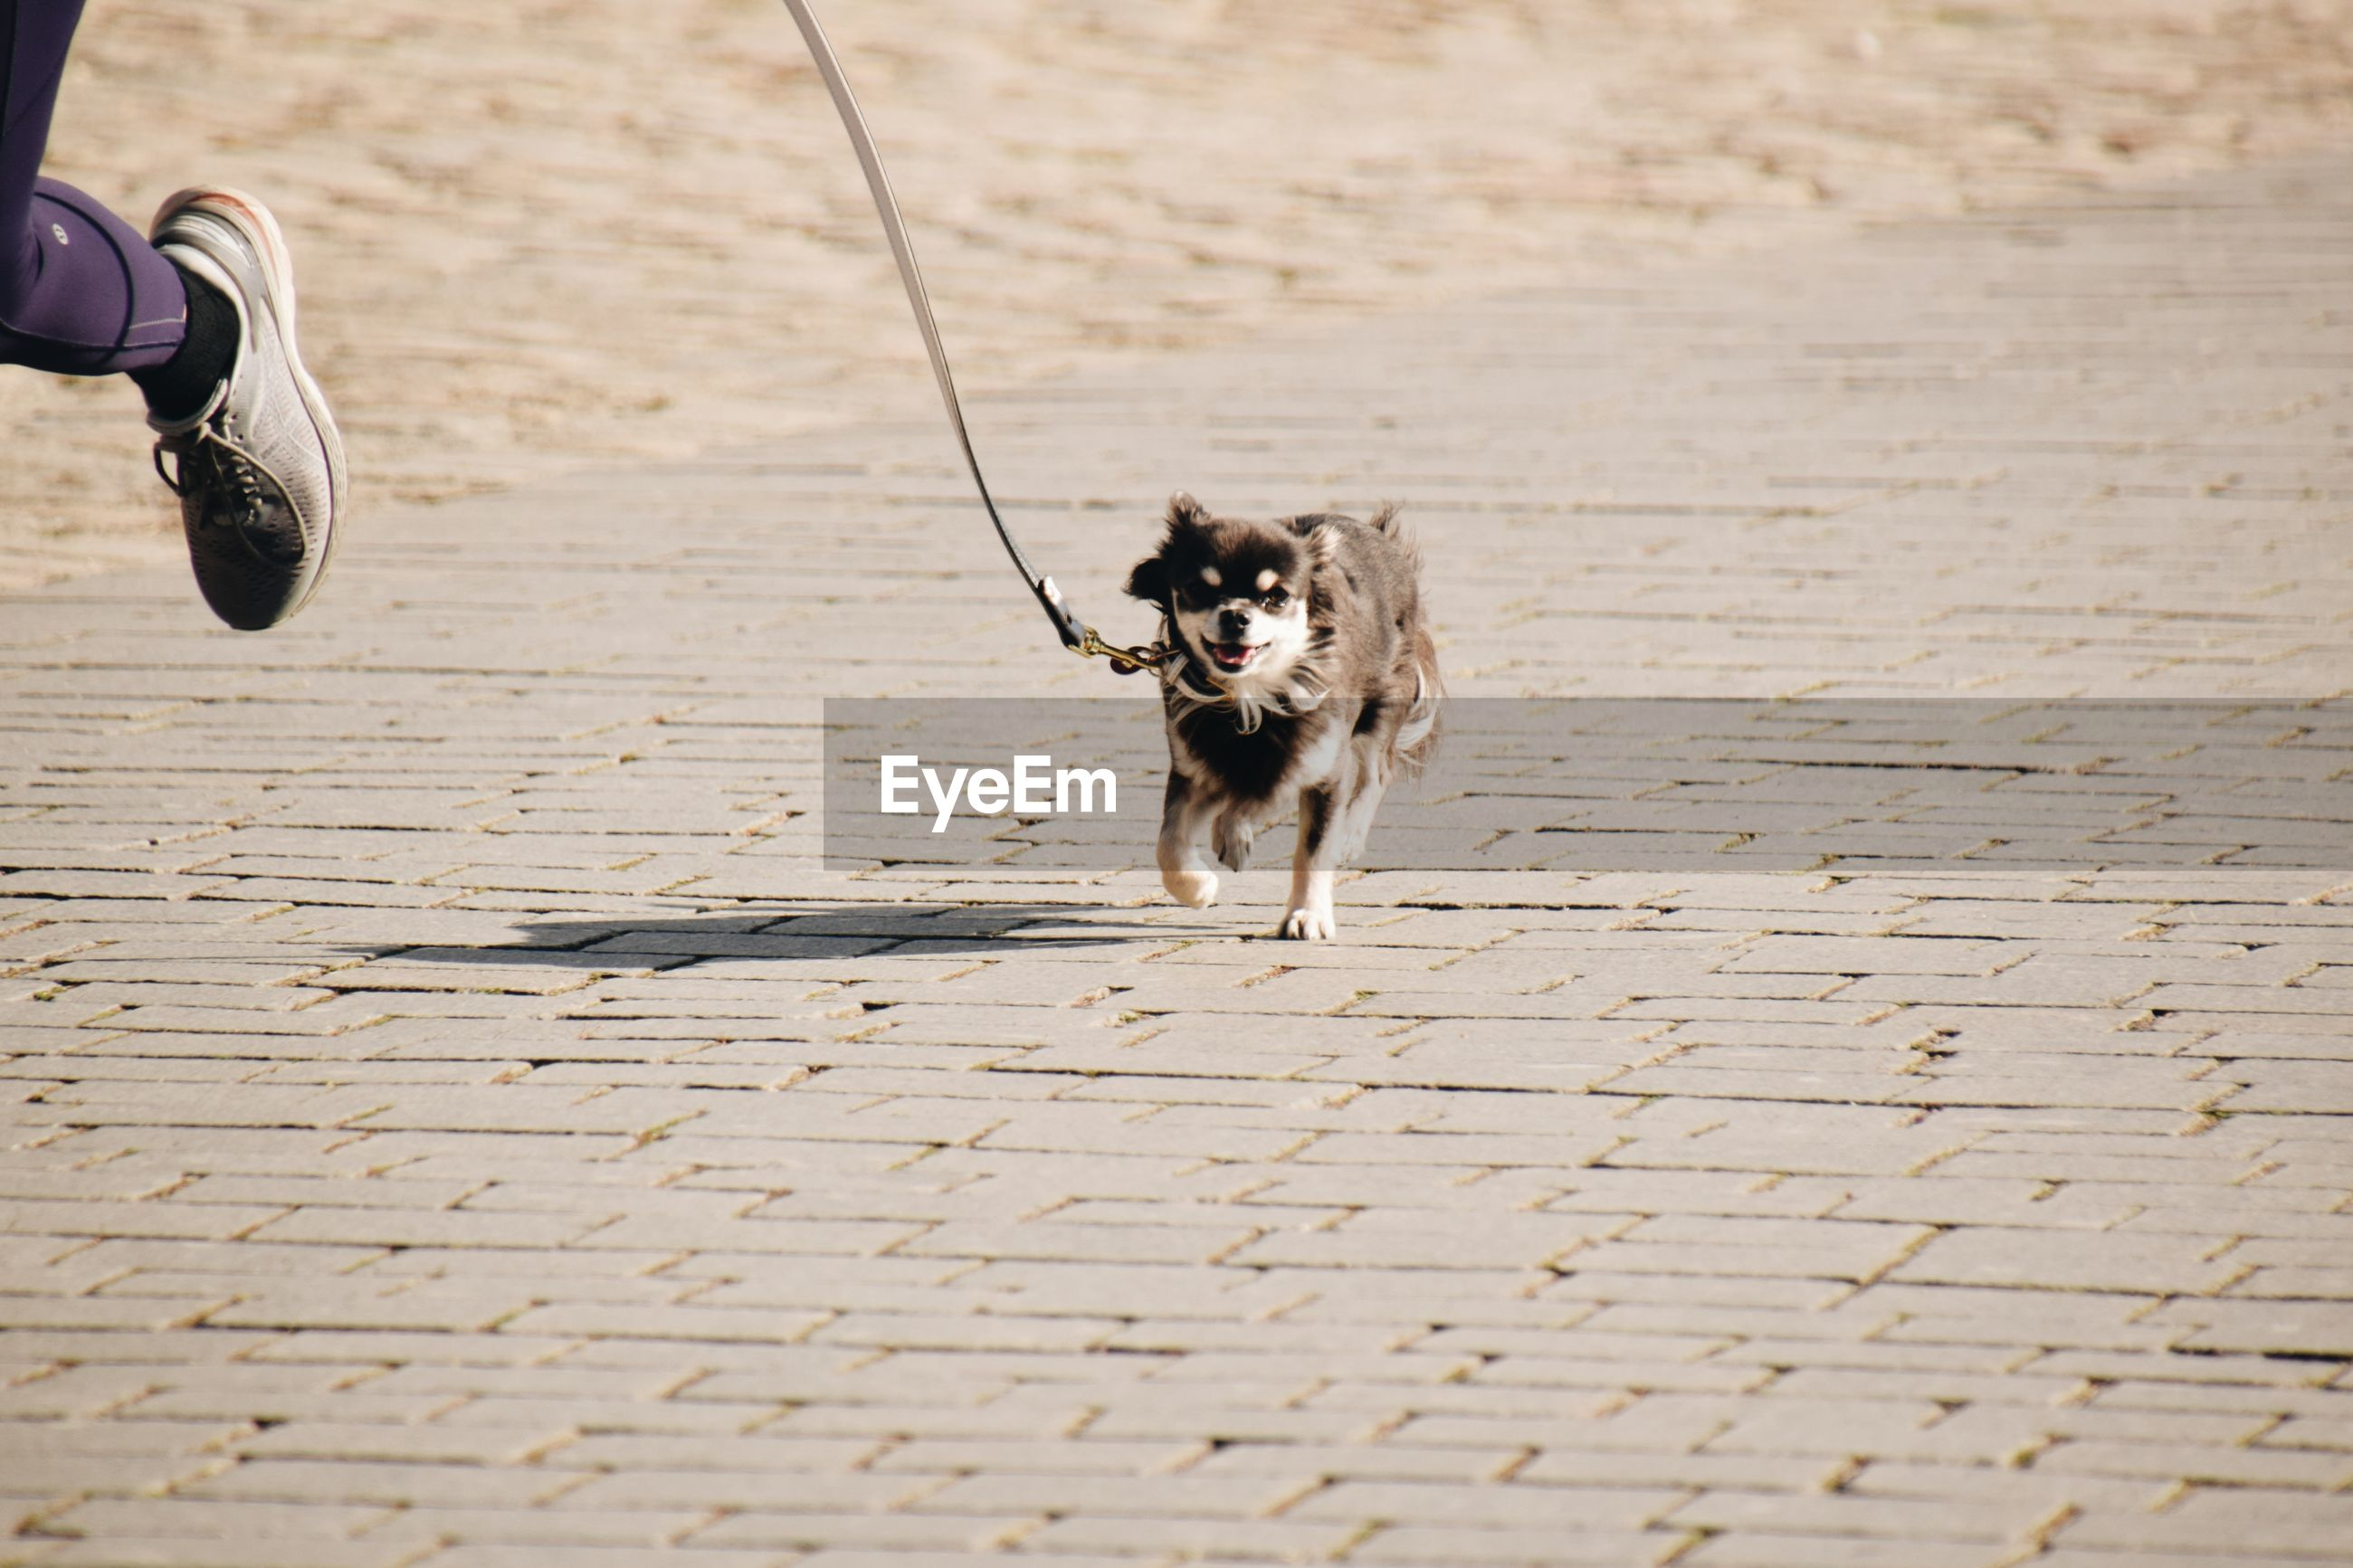 HIGH ANGLE VIEW OF DOG RUNNING ON FOOTPATH BY BRICK WALL